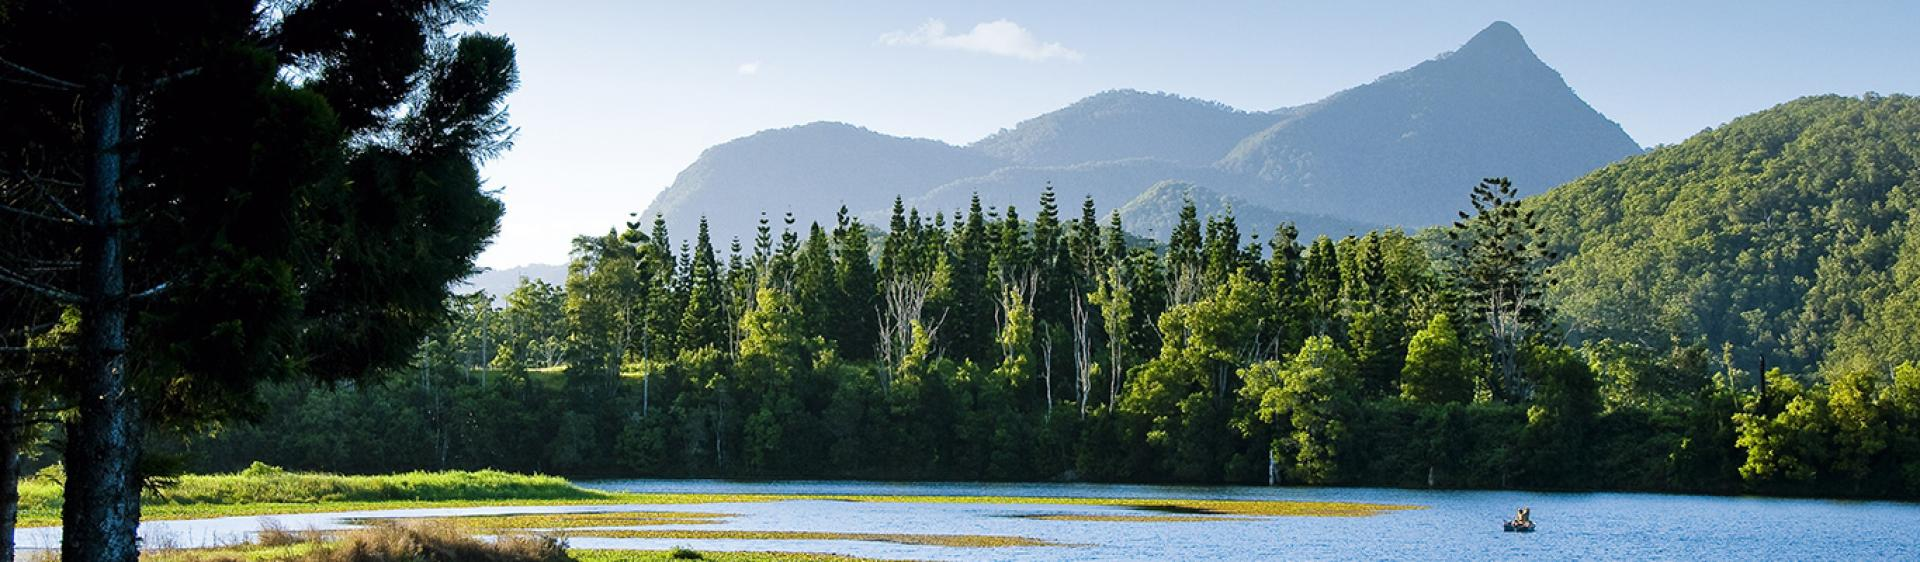 堤维德岬 (Tweed Heads) 沃宁山 (Mount Warning)